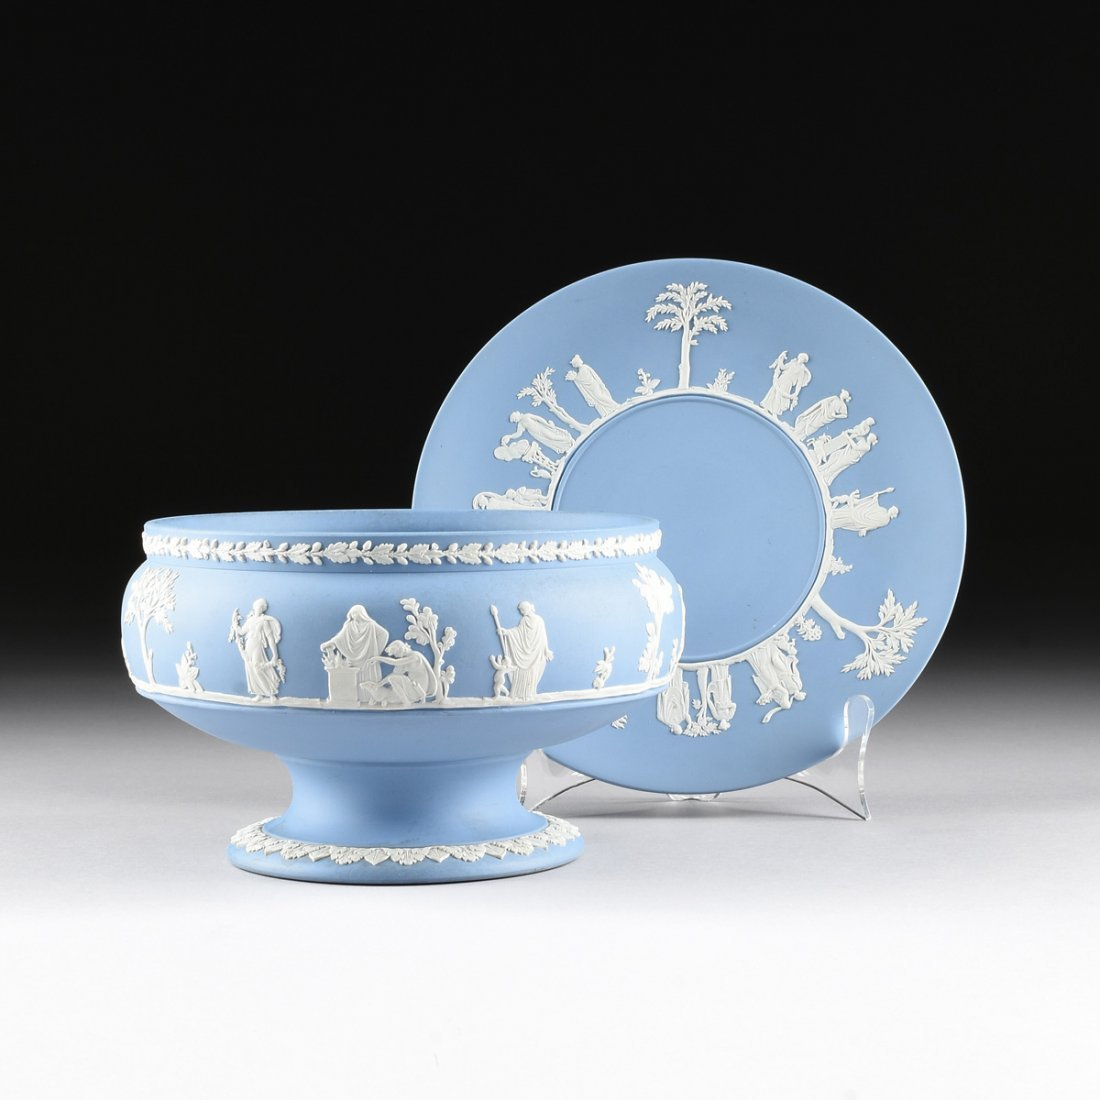 TWO WEDGWOOD BLUE AND WHITE JASPER WARES, IMPRESSED